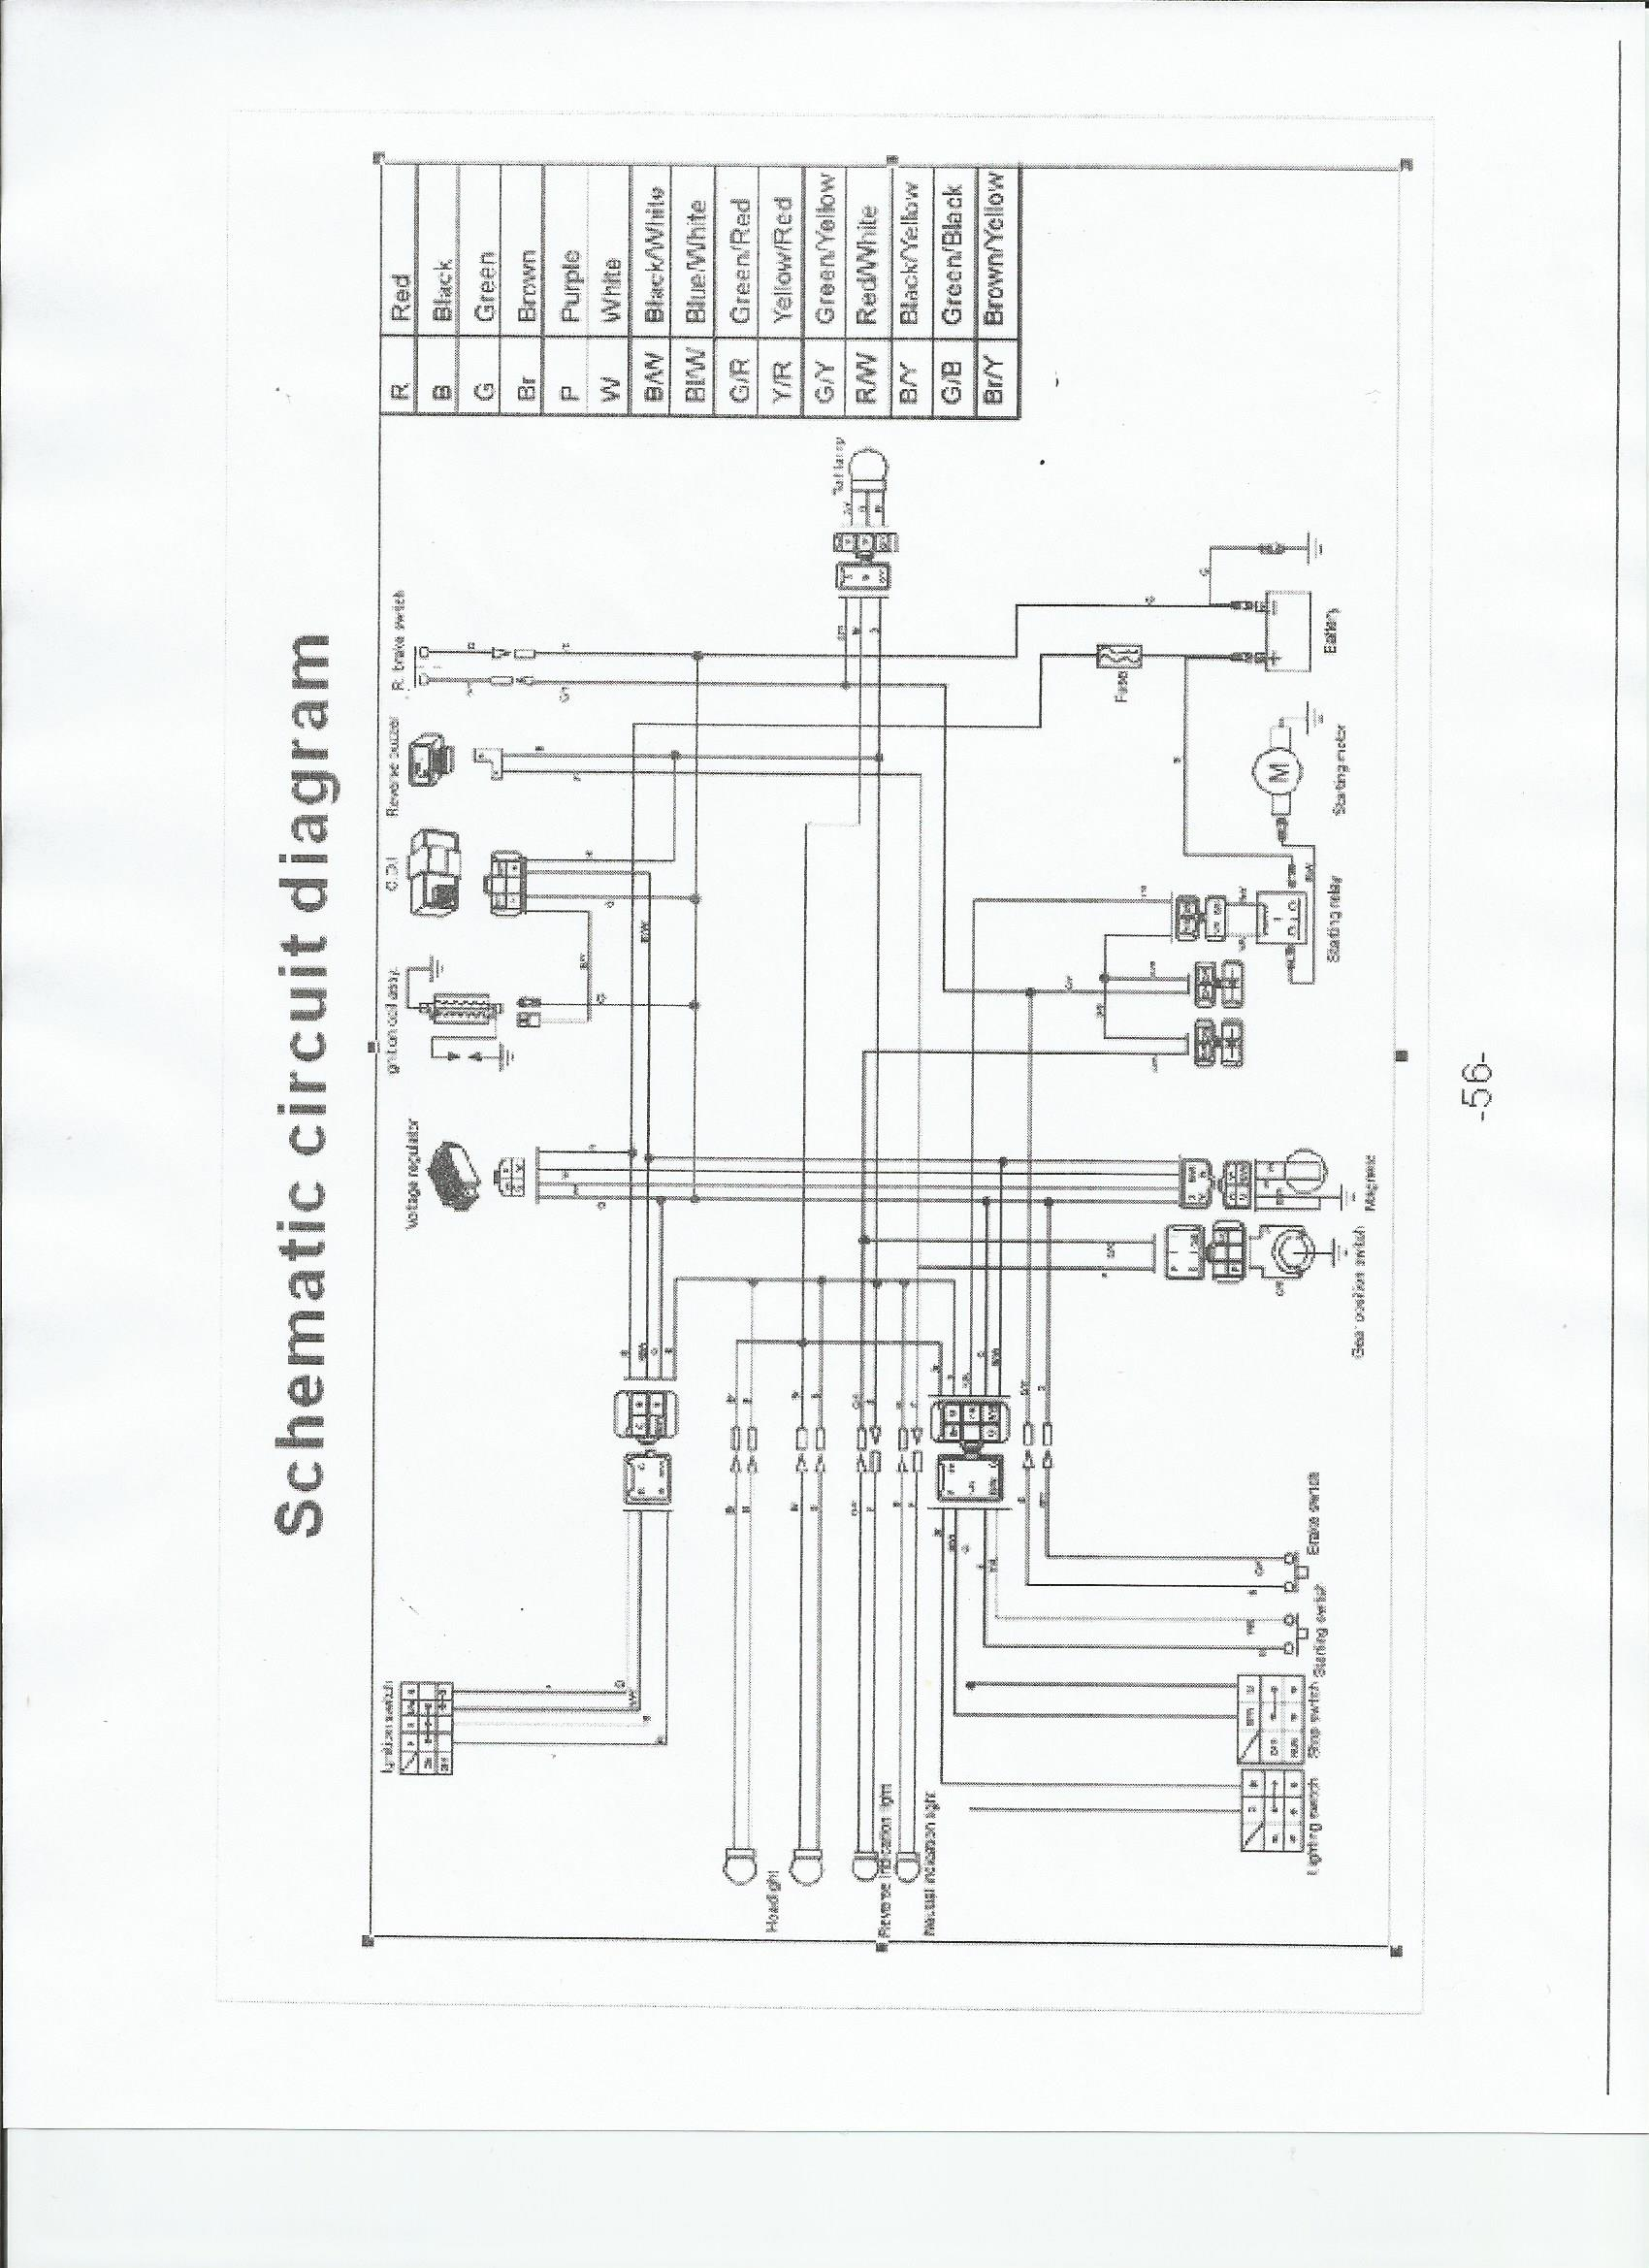 2003 Honda 400ex Wiring Schematic Content Resource Of Diagram 2008 Grizzly 450 2002 Carburetor Schematics Rh Parntesis Co Yamaha Electrical